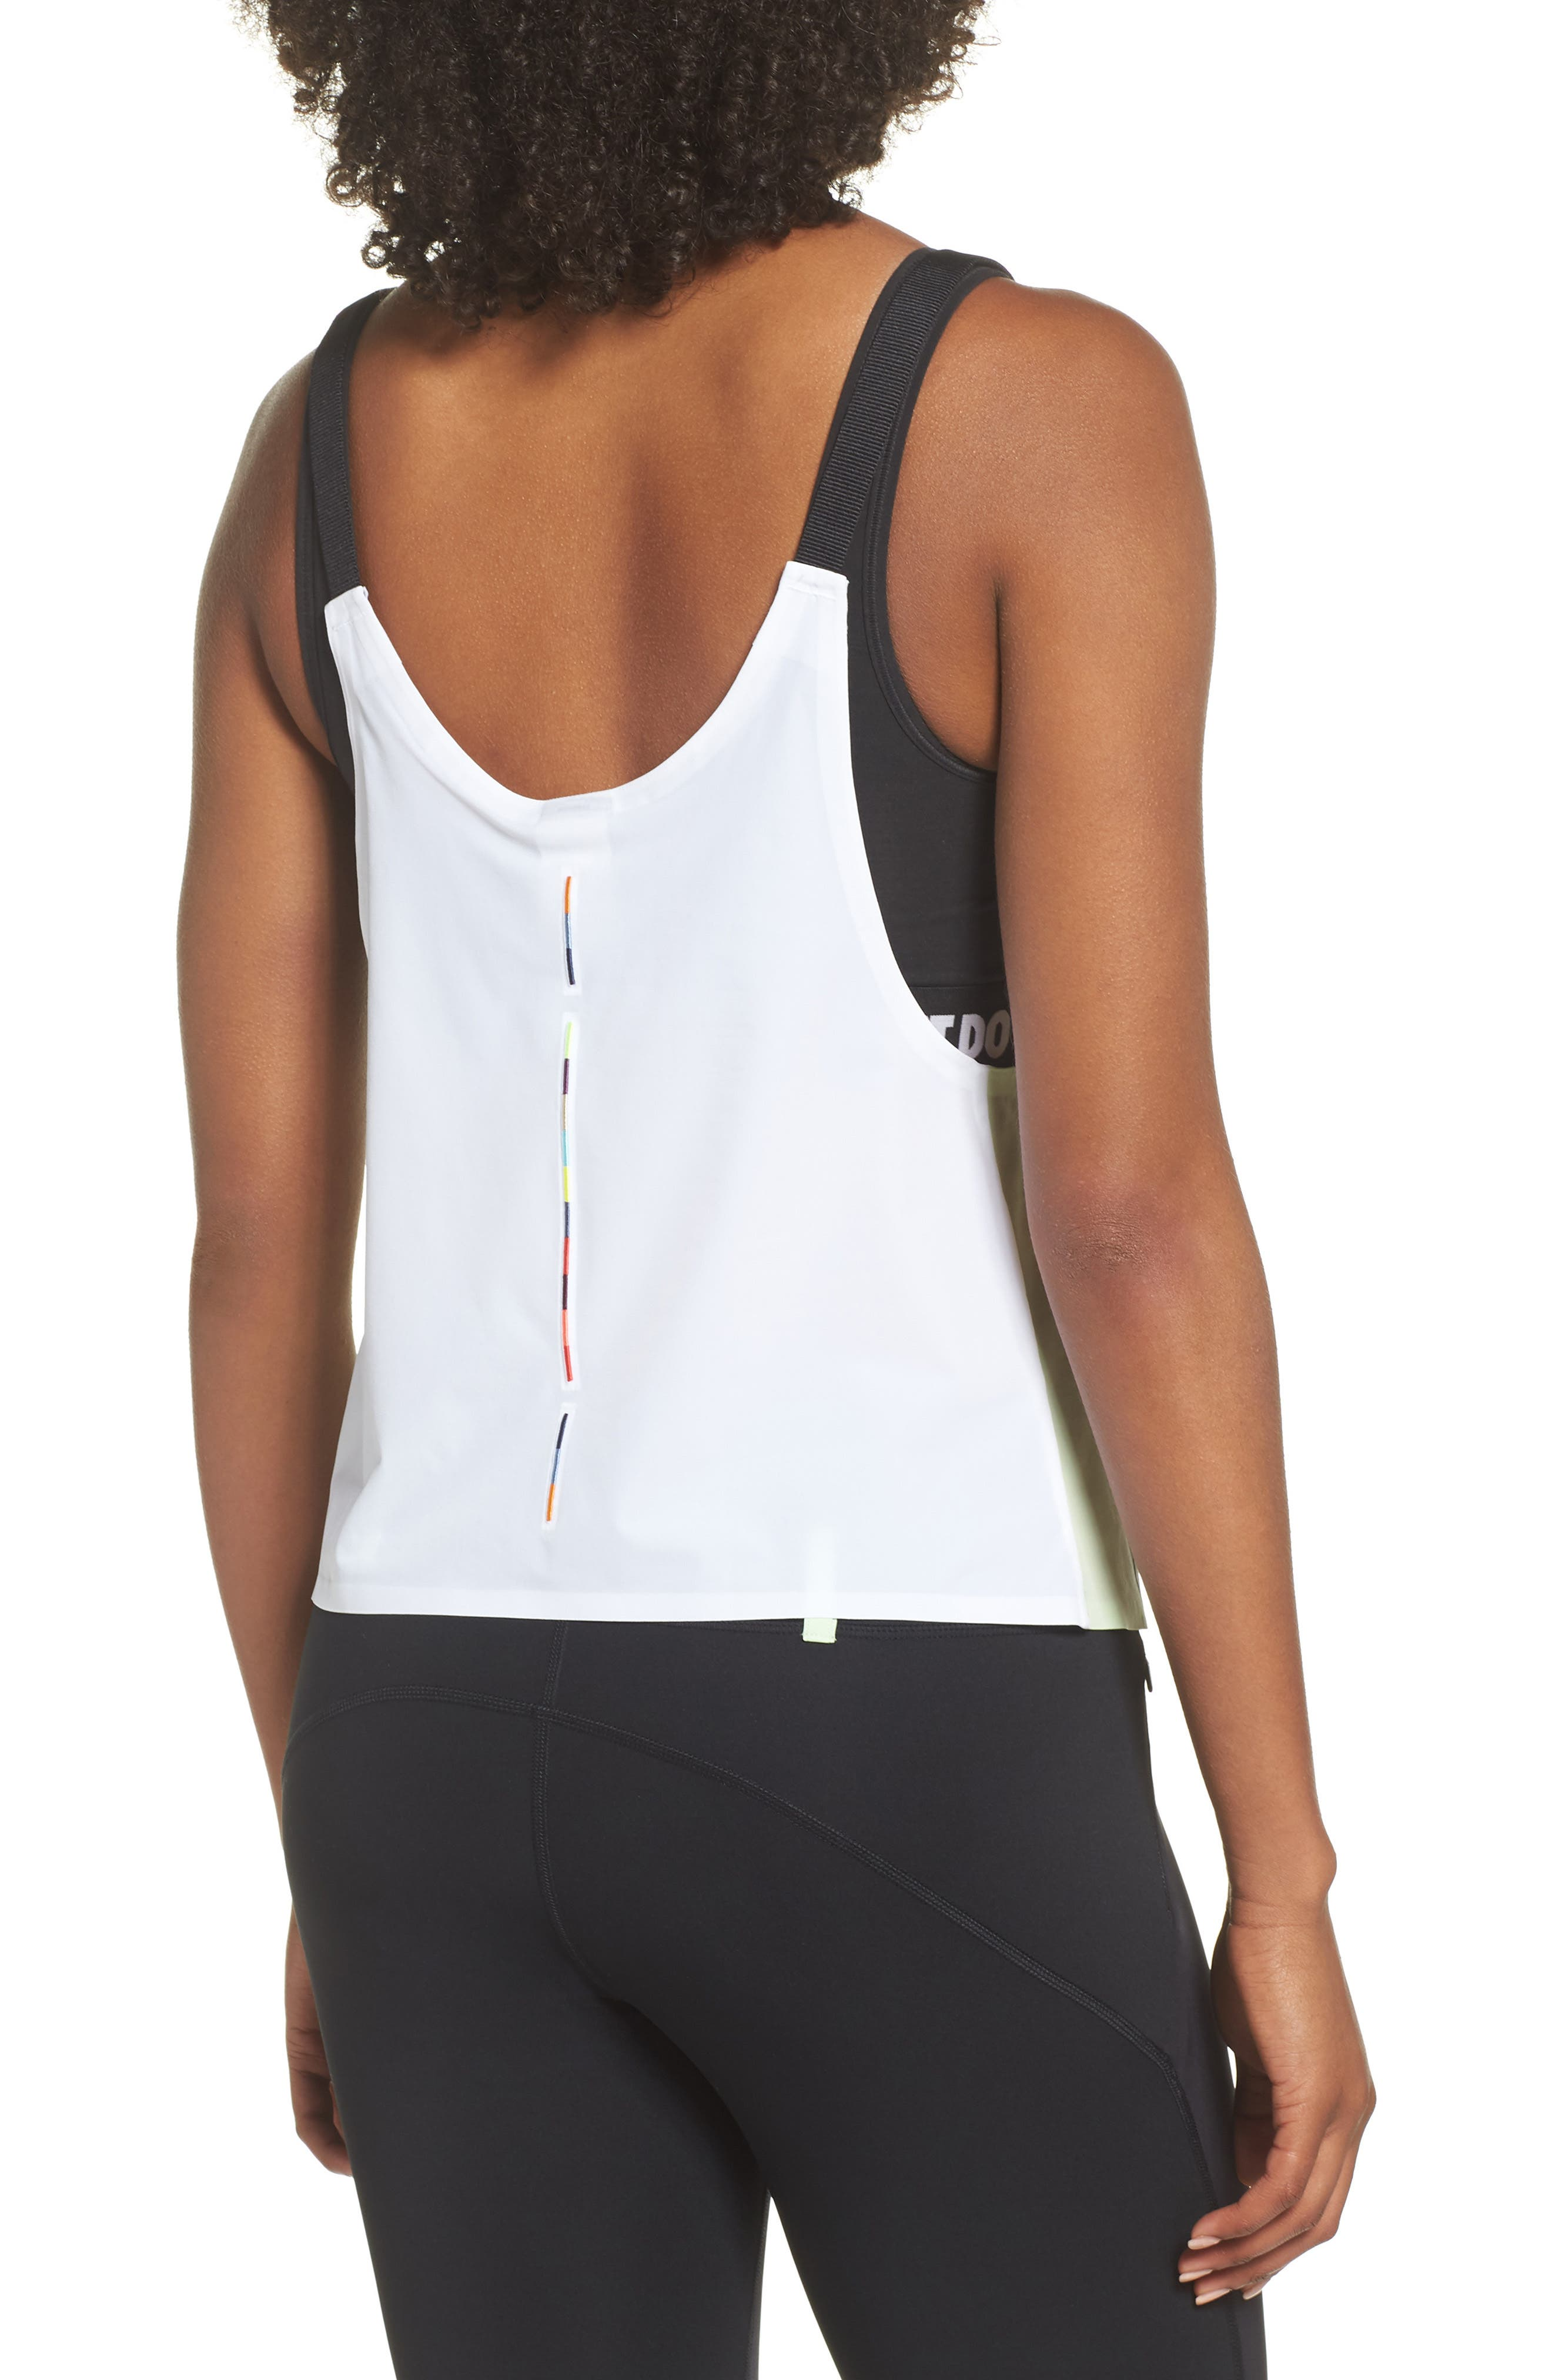 NRG Women's Colorblock Tank,                             Alternate thumbnail 2, color,                             Vast Grey/ White/ Vapor Green